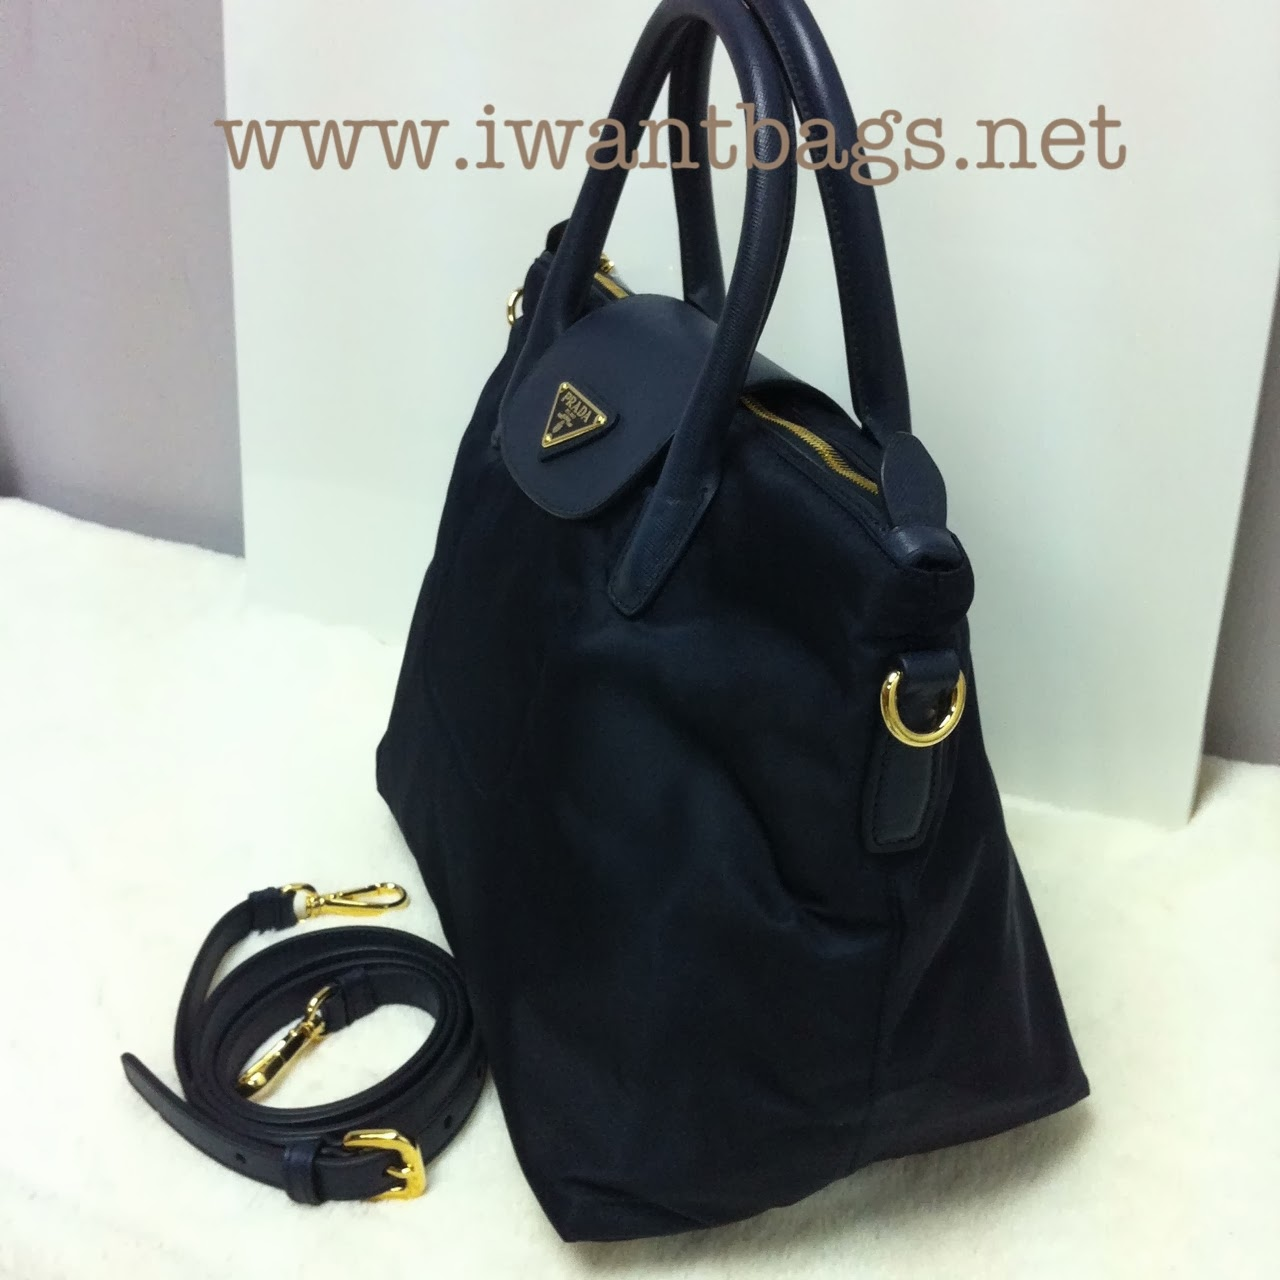 c1876a76ec60 ... shopping prada hobo bag uk prada tessuto saffiano nylon tote prada tote  bag d3689 b147e